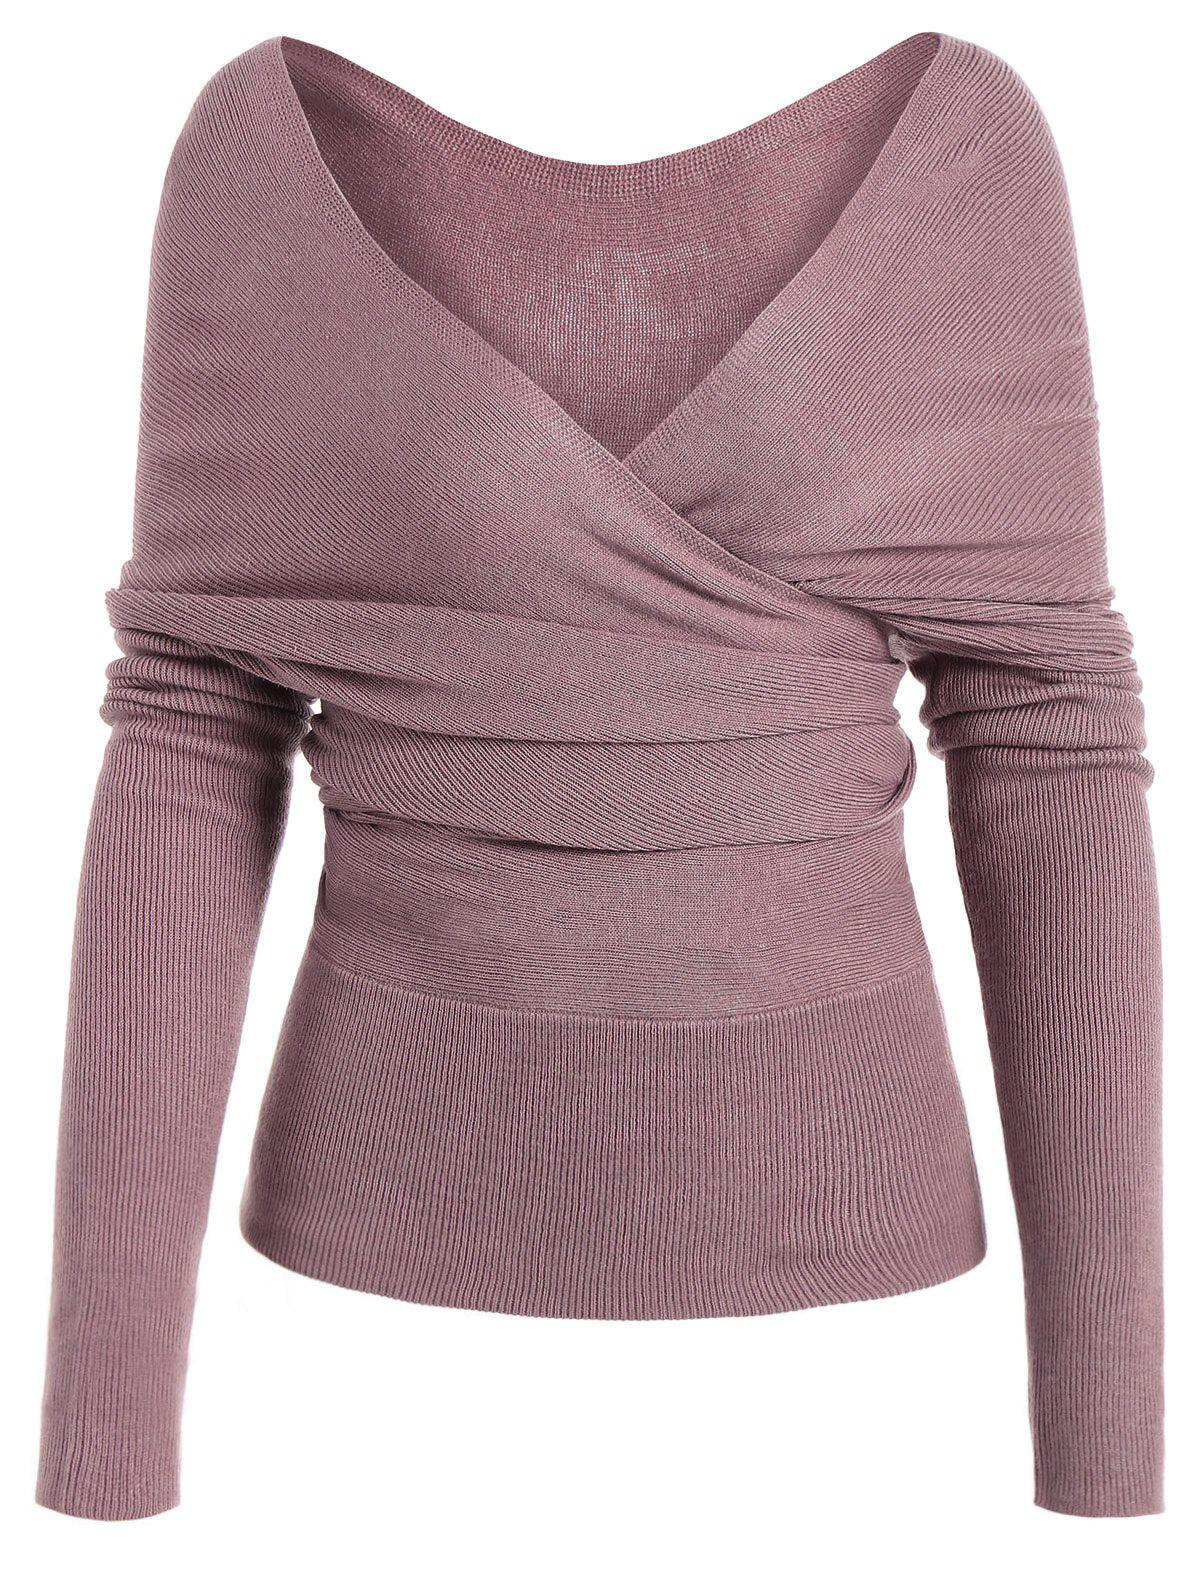 Low Cut Surplice Knitted Top - PINKISH PURPLE S